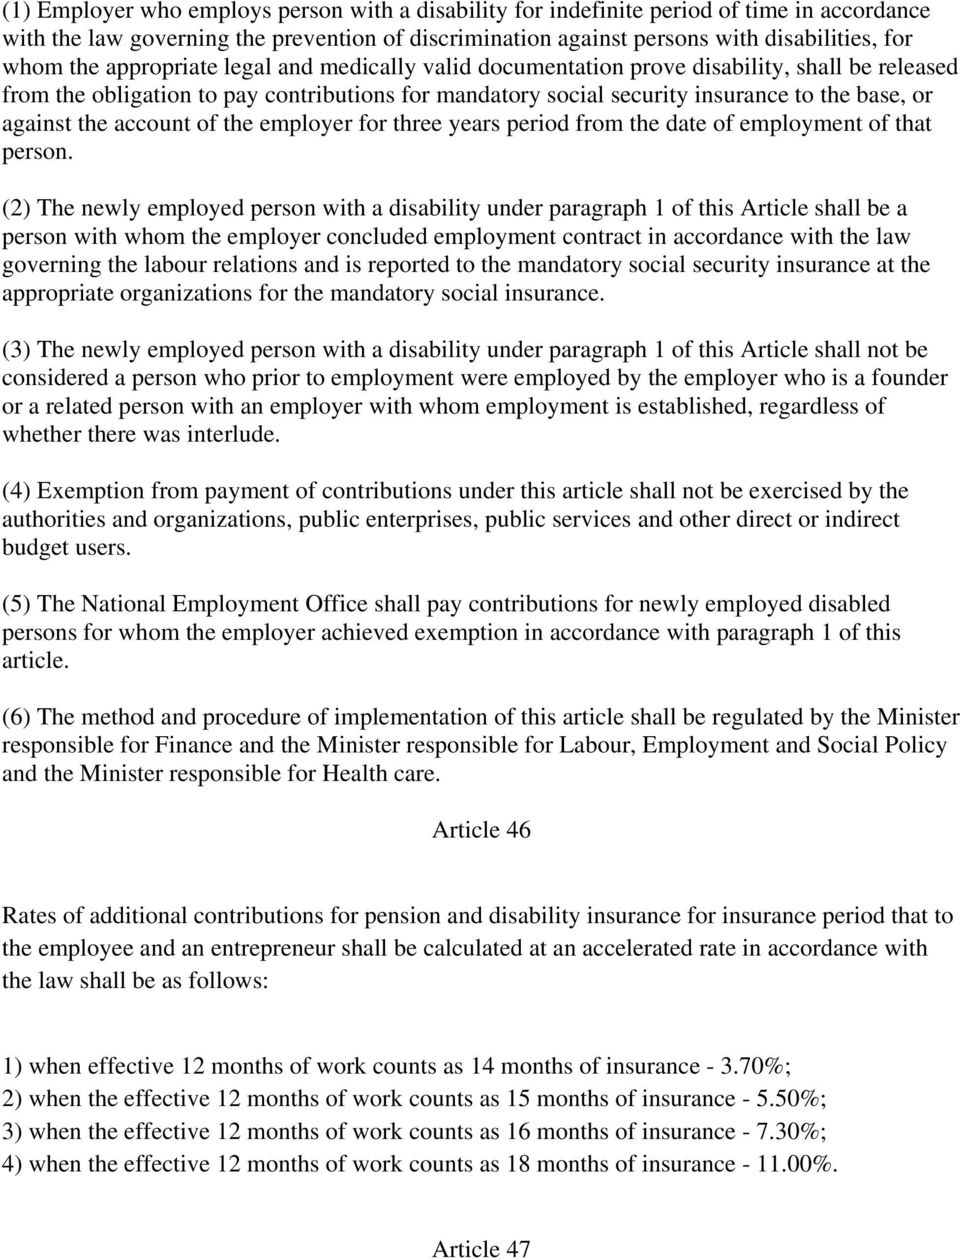 account of the employer for three years period from the date of employment of that person.